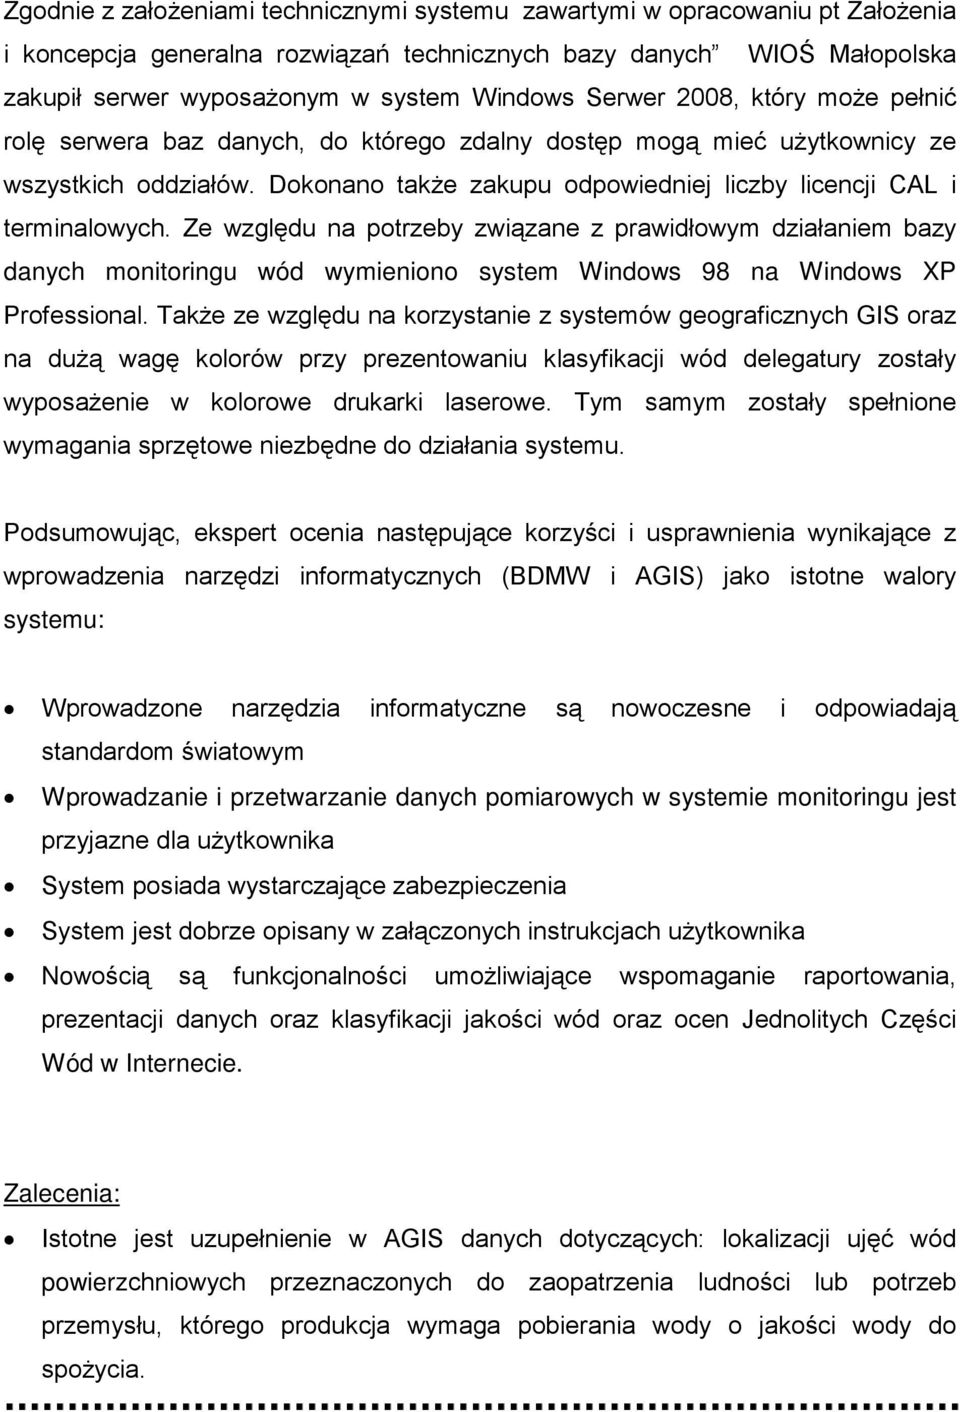 Ze względu na potrzeby związane z prawidłowym działaniem bazy danych monitoringu wód wymieniono system Windows 98 na Windows XP Professional.